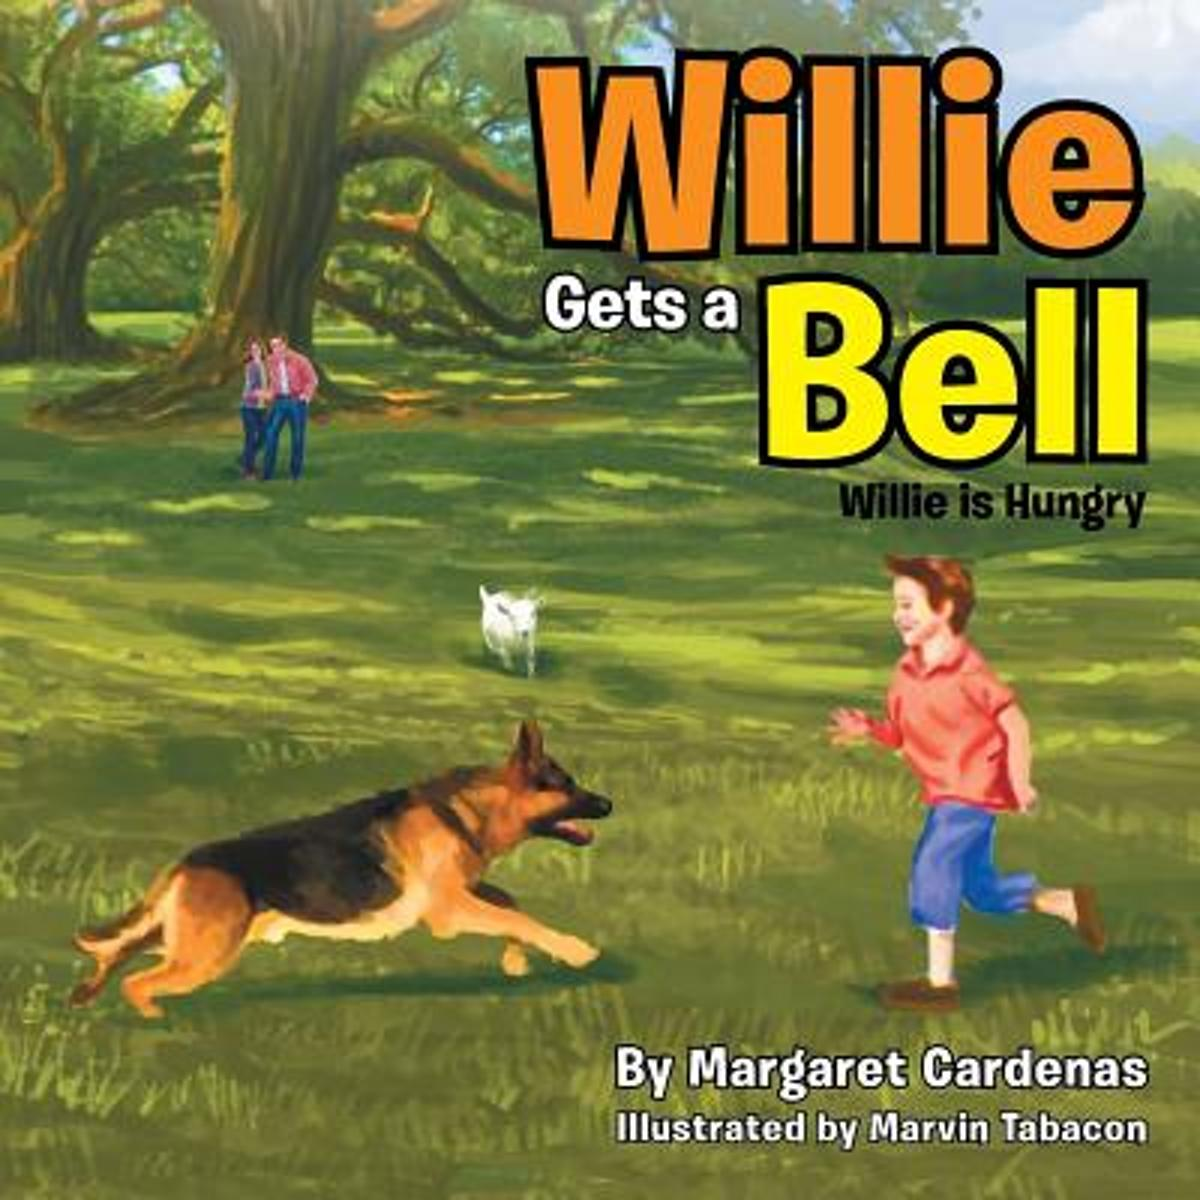 Willie Gets a Bell